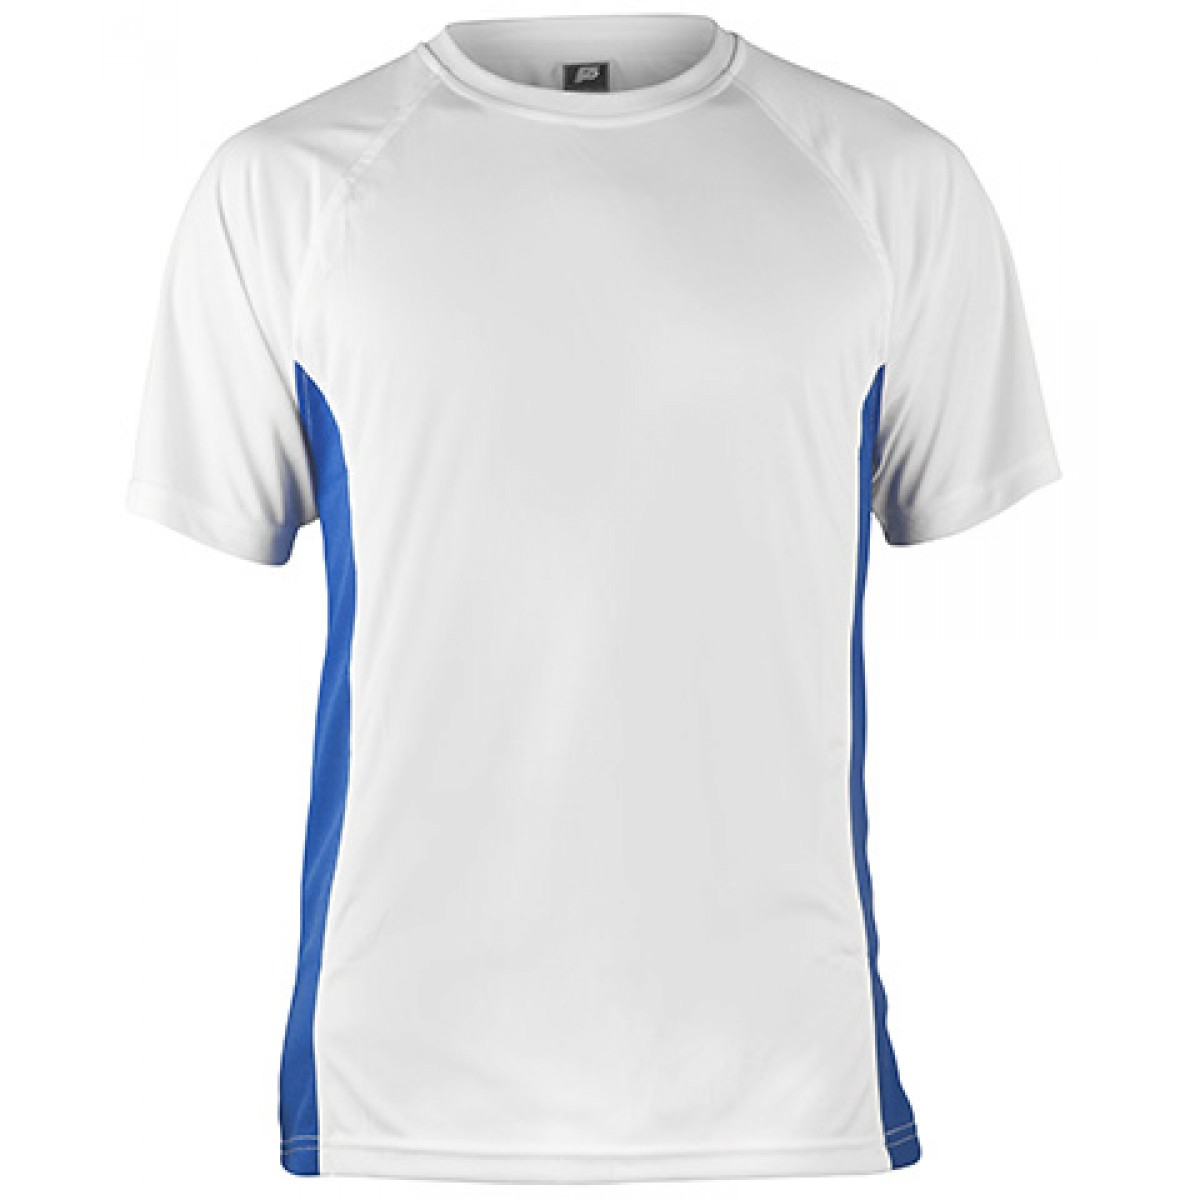 Short Sleeves Performance With Blue Side Insert